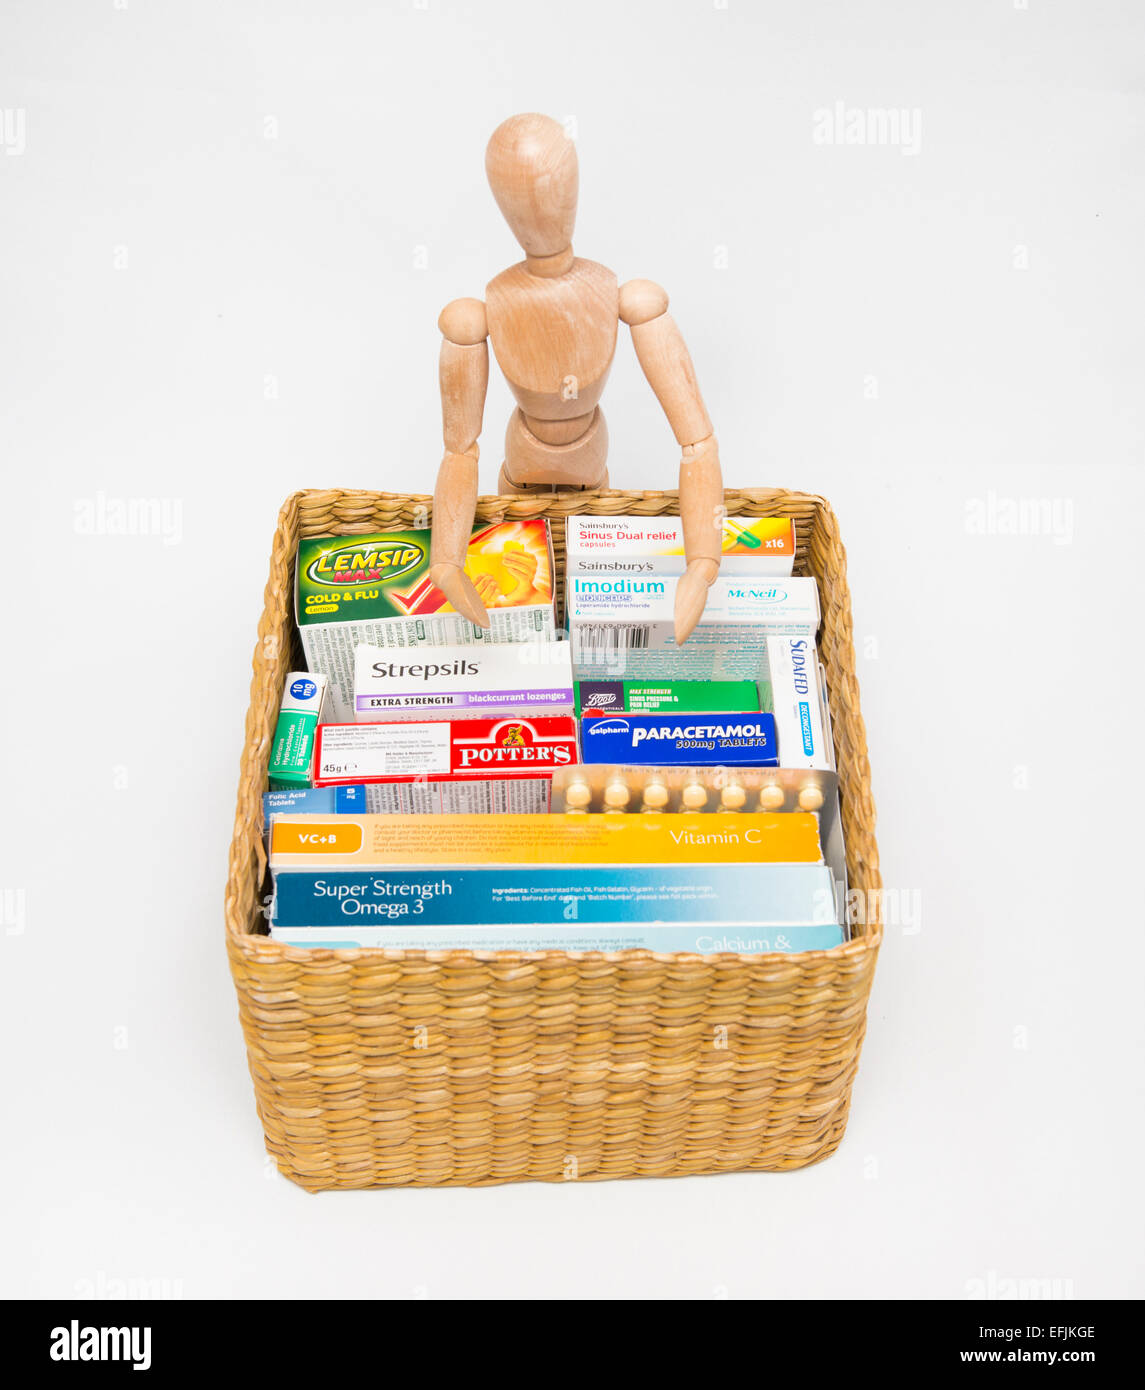 An artist's dummy and a basket of vitamins, remedies and medicine. - Stock Image